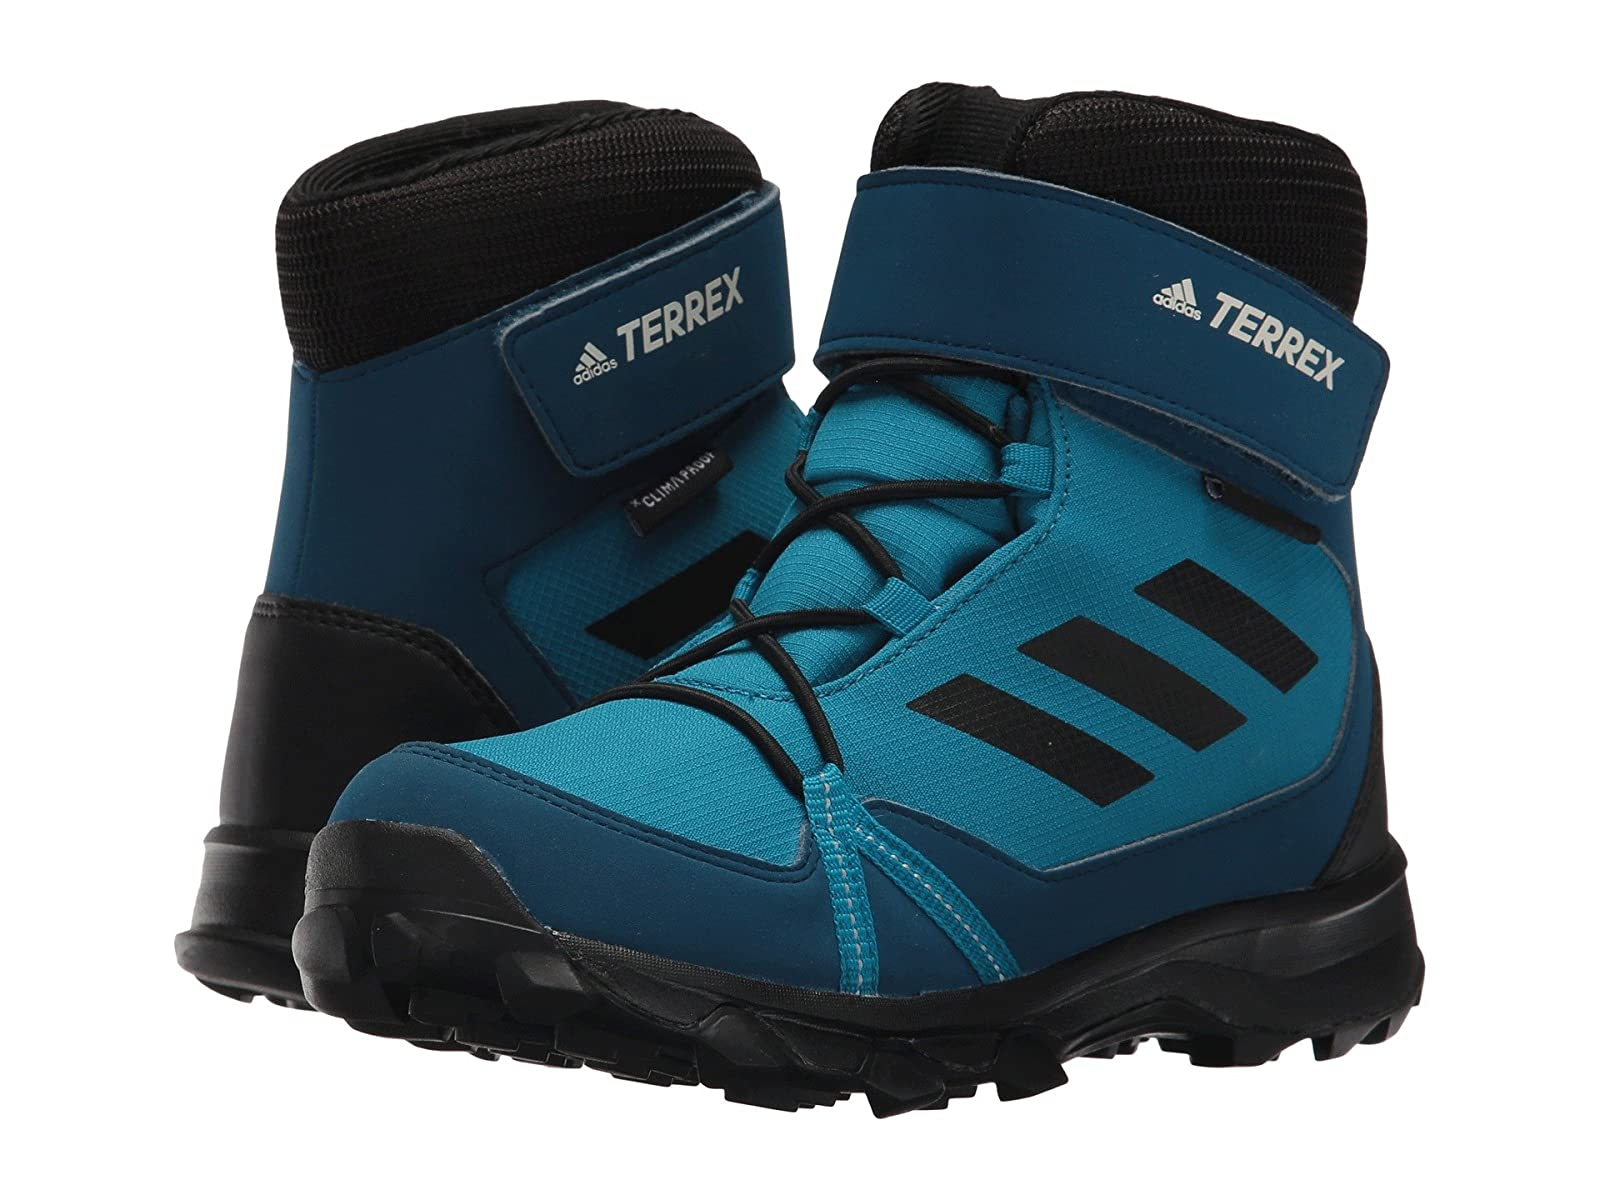 adidas Outdoor Kids Terrex Snow CF CP CW (Little Kid/Big Kid)Stylish and characteristic shoes